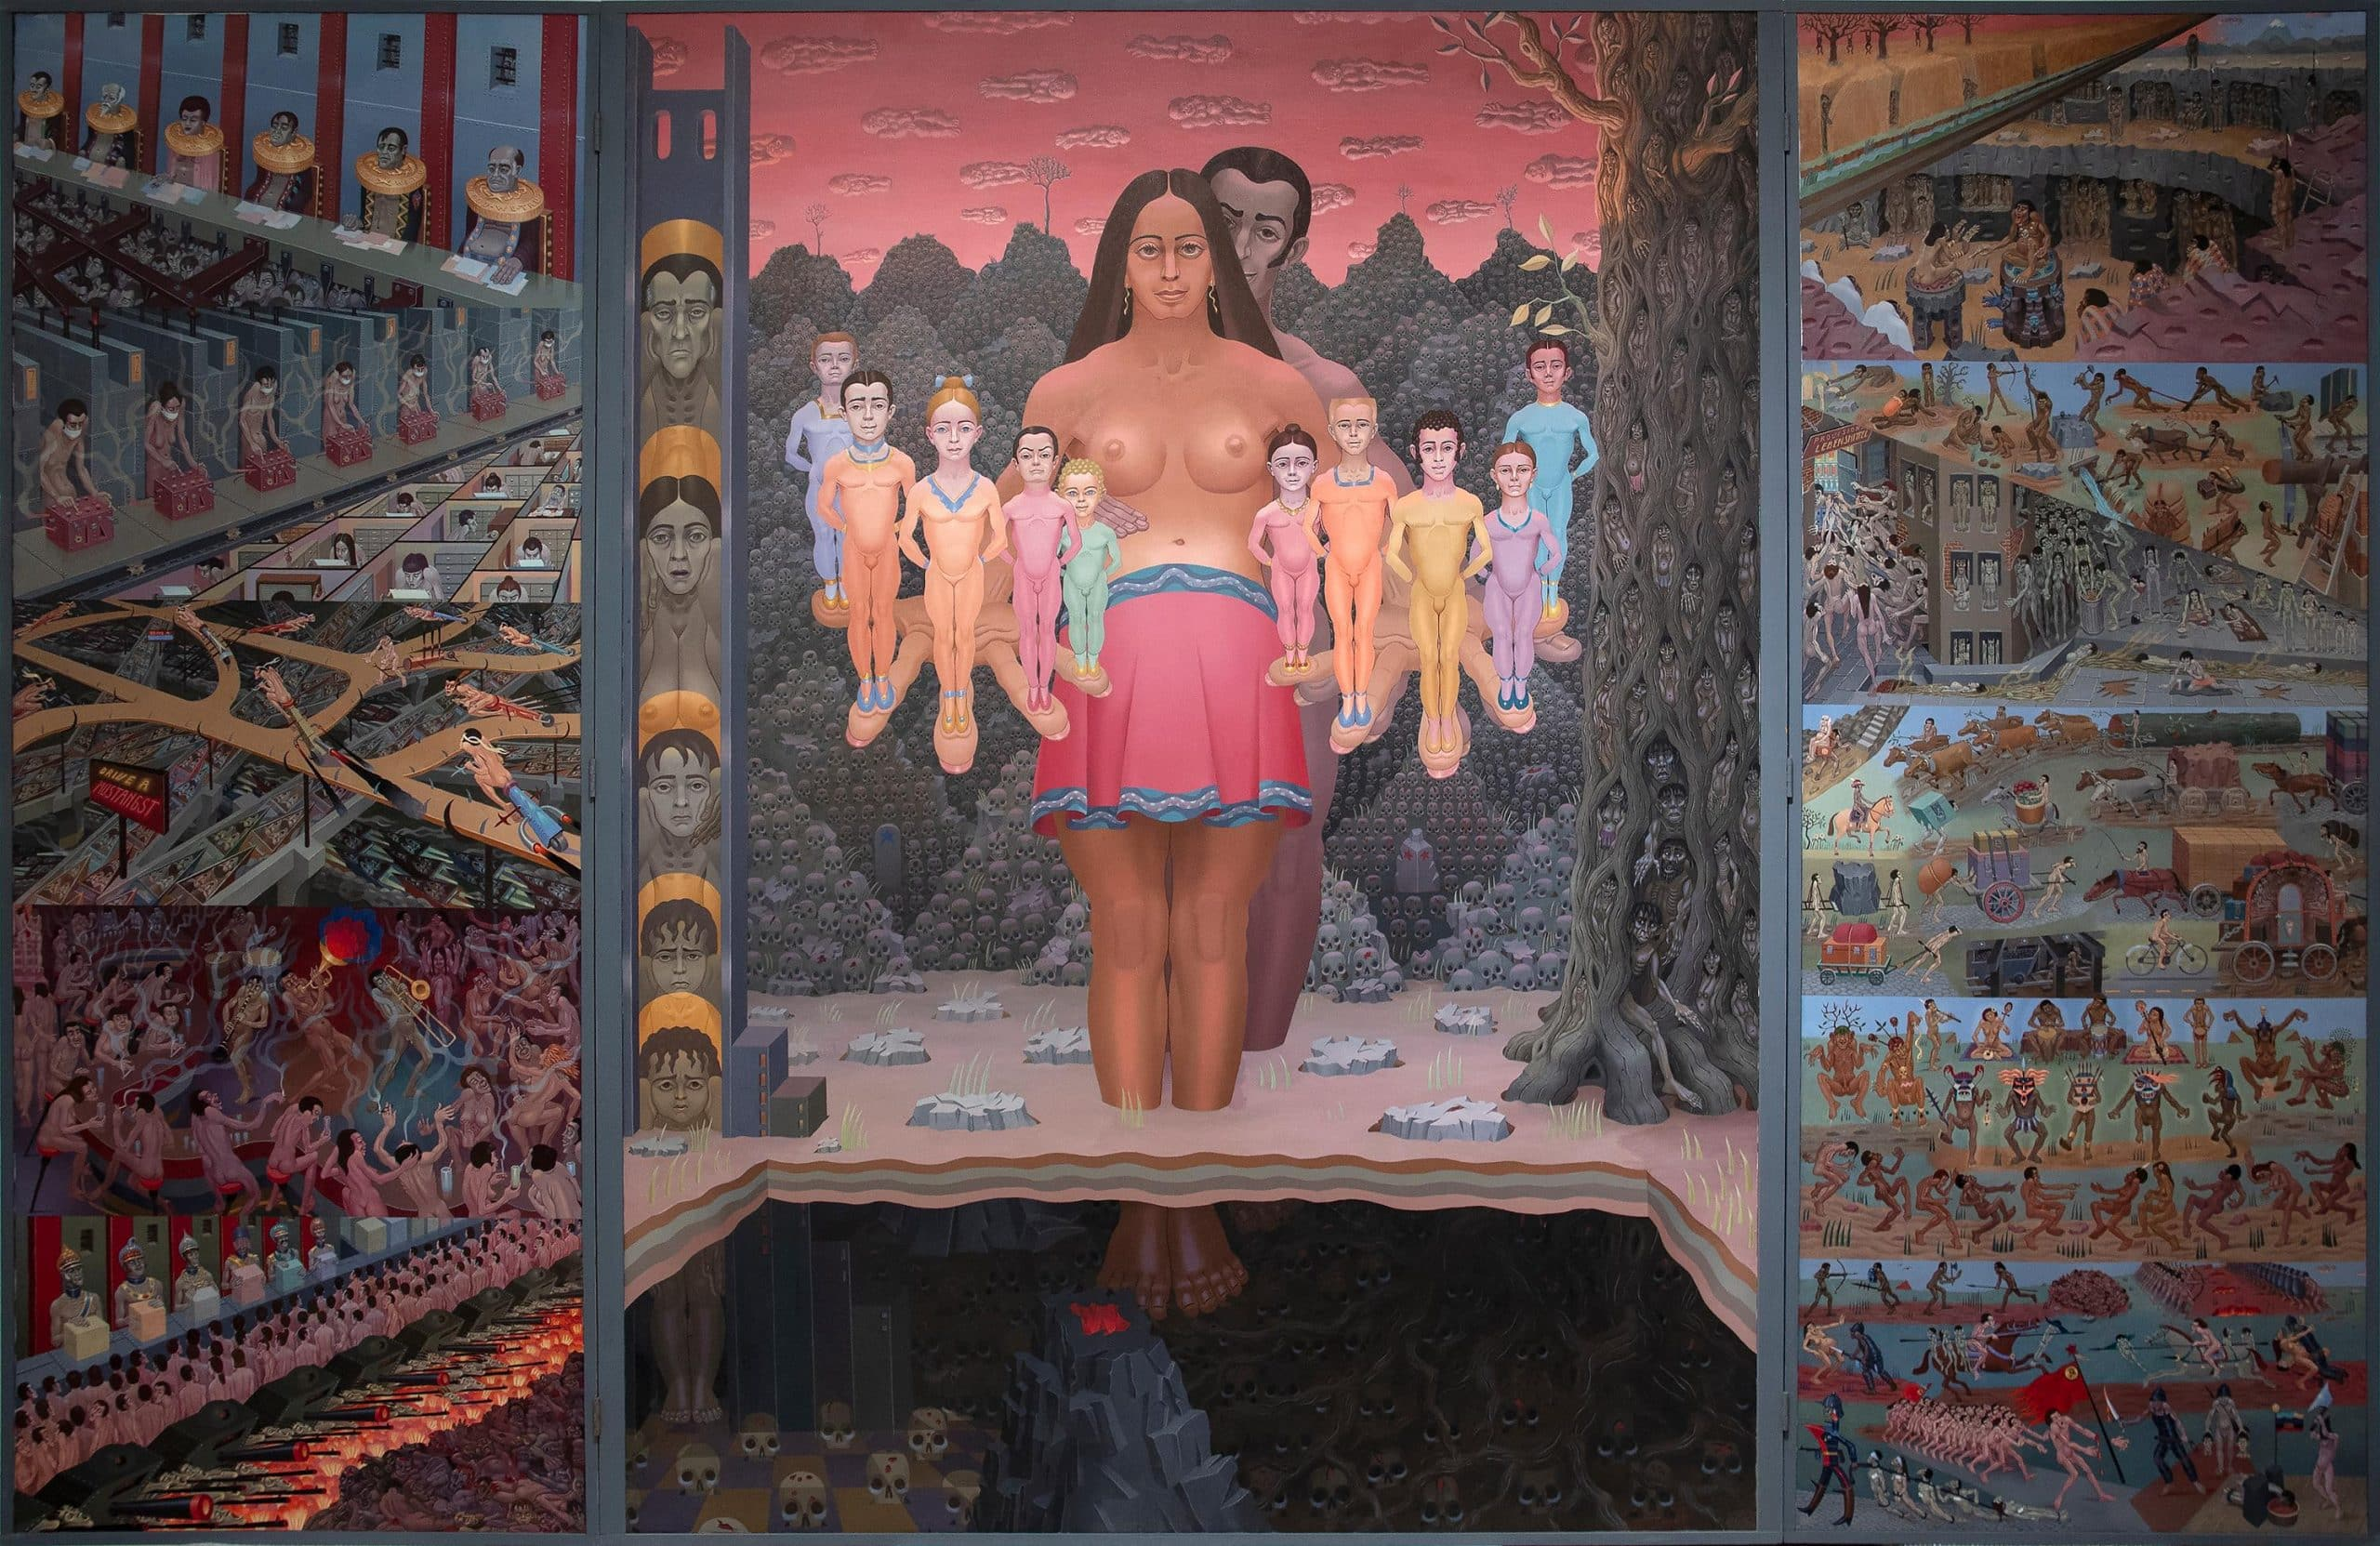 The Human Condition, painted in the late 20th century by Irving Norman and offered by Heather James Fine Art